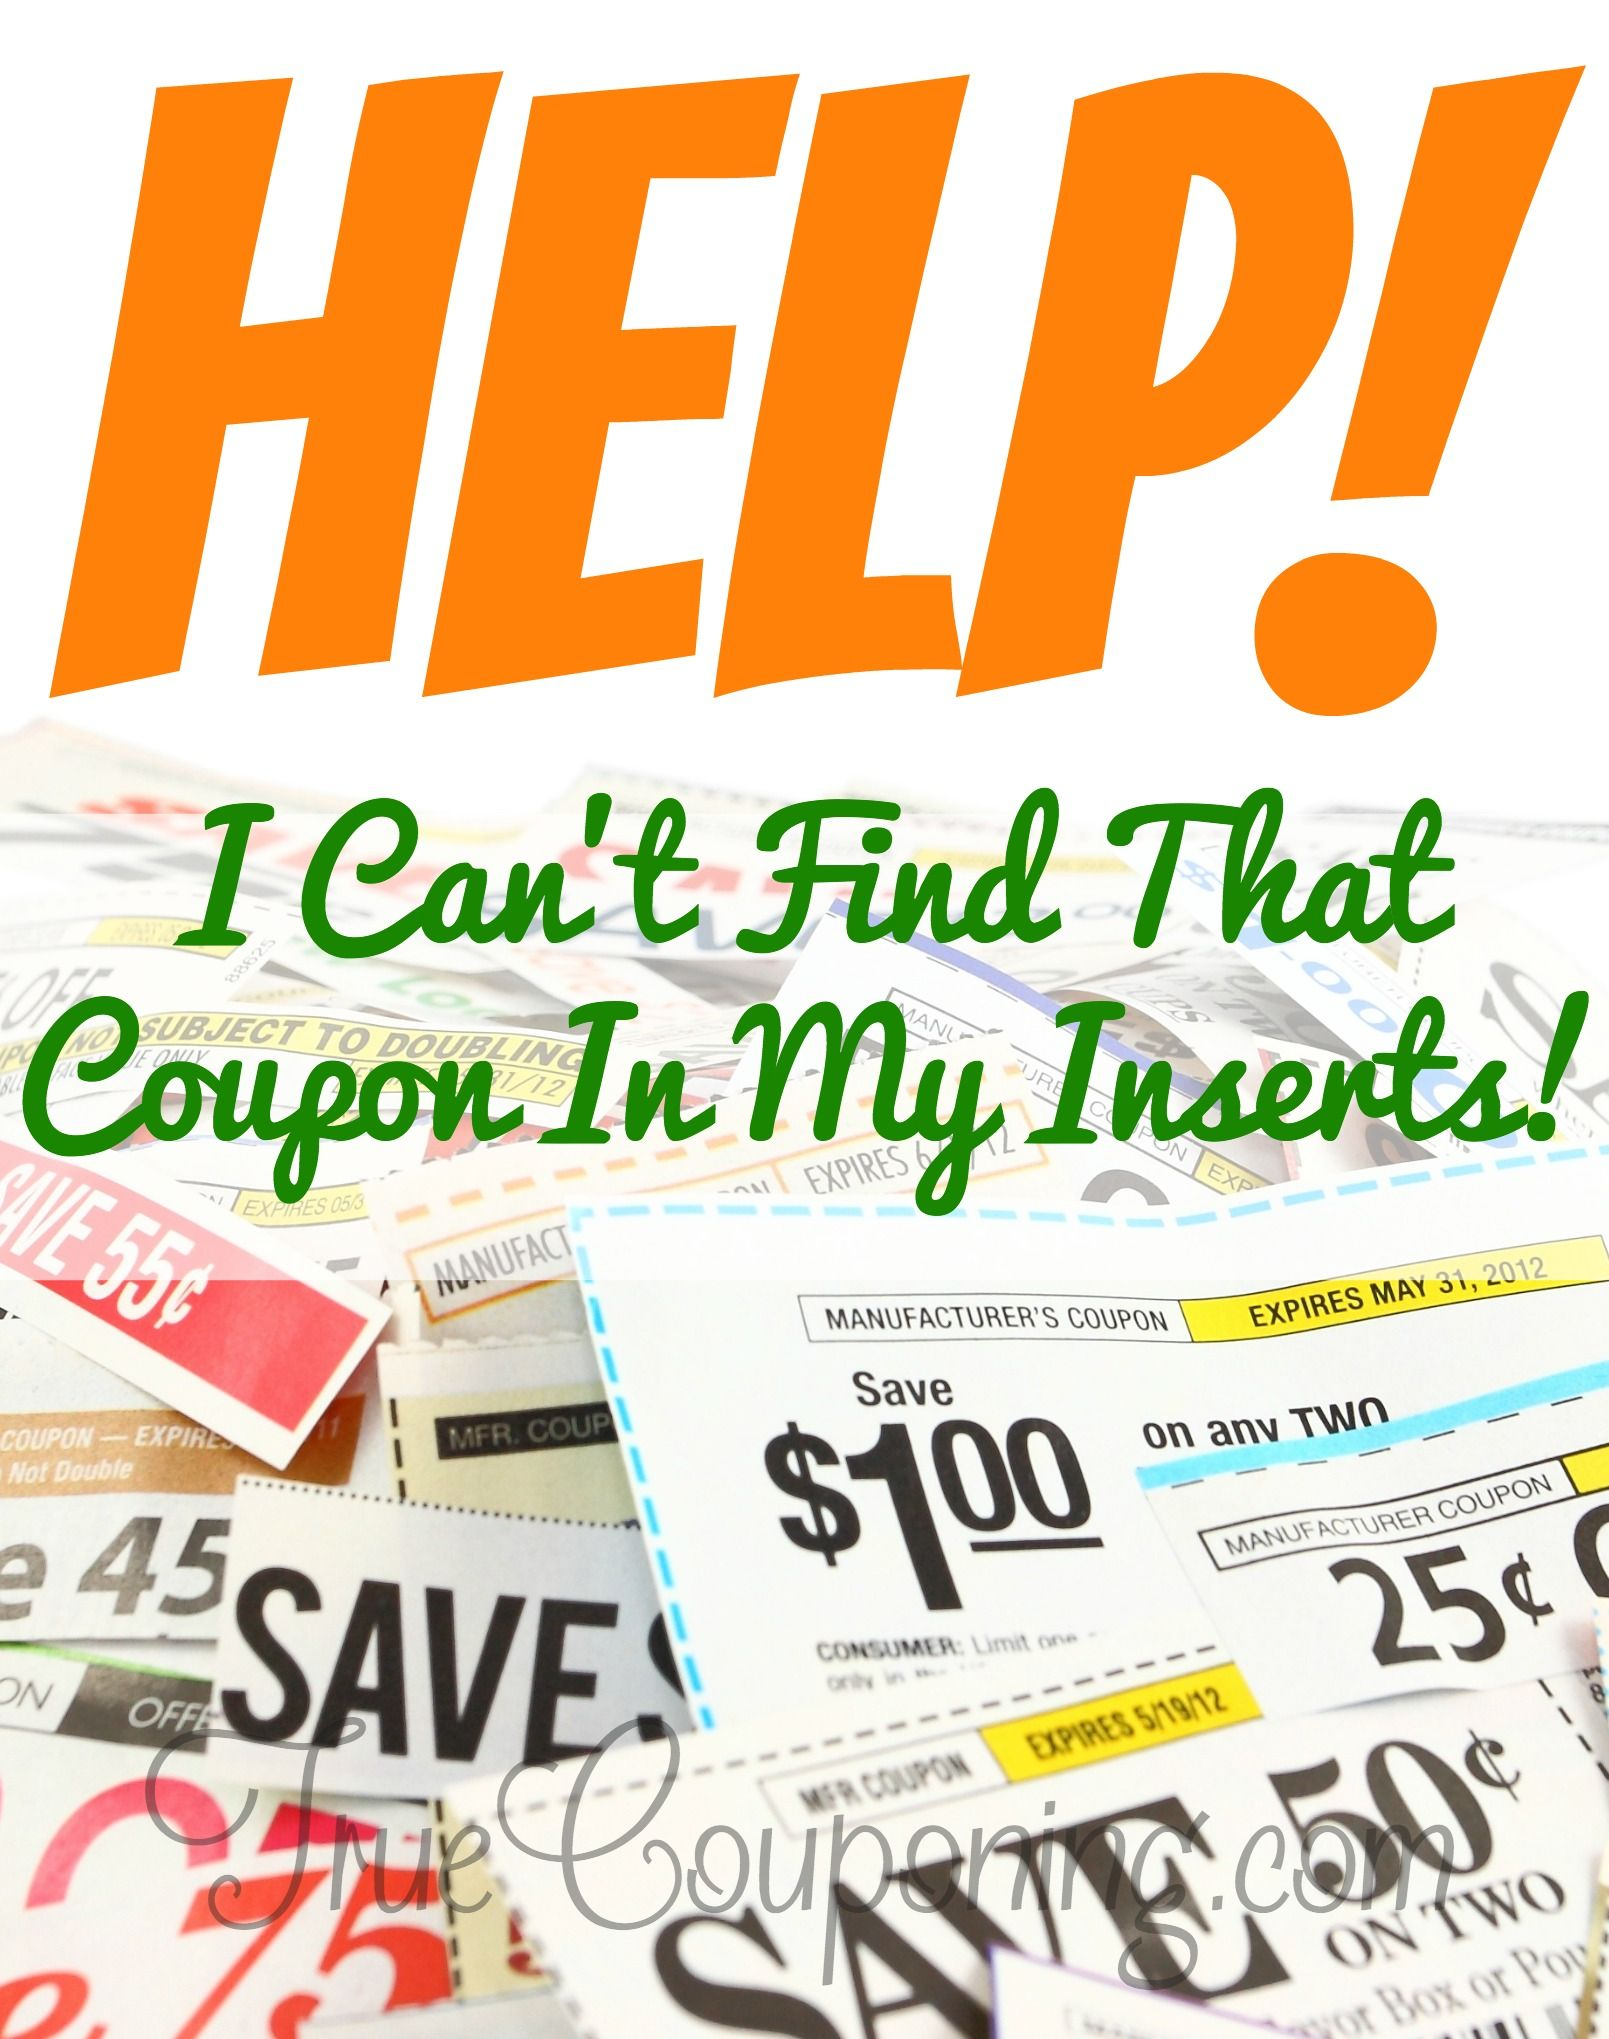 Help! I Can't Find a Coupon in My Coupon Insert!